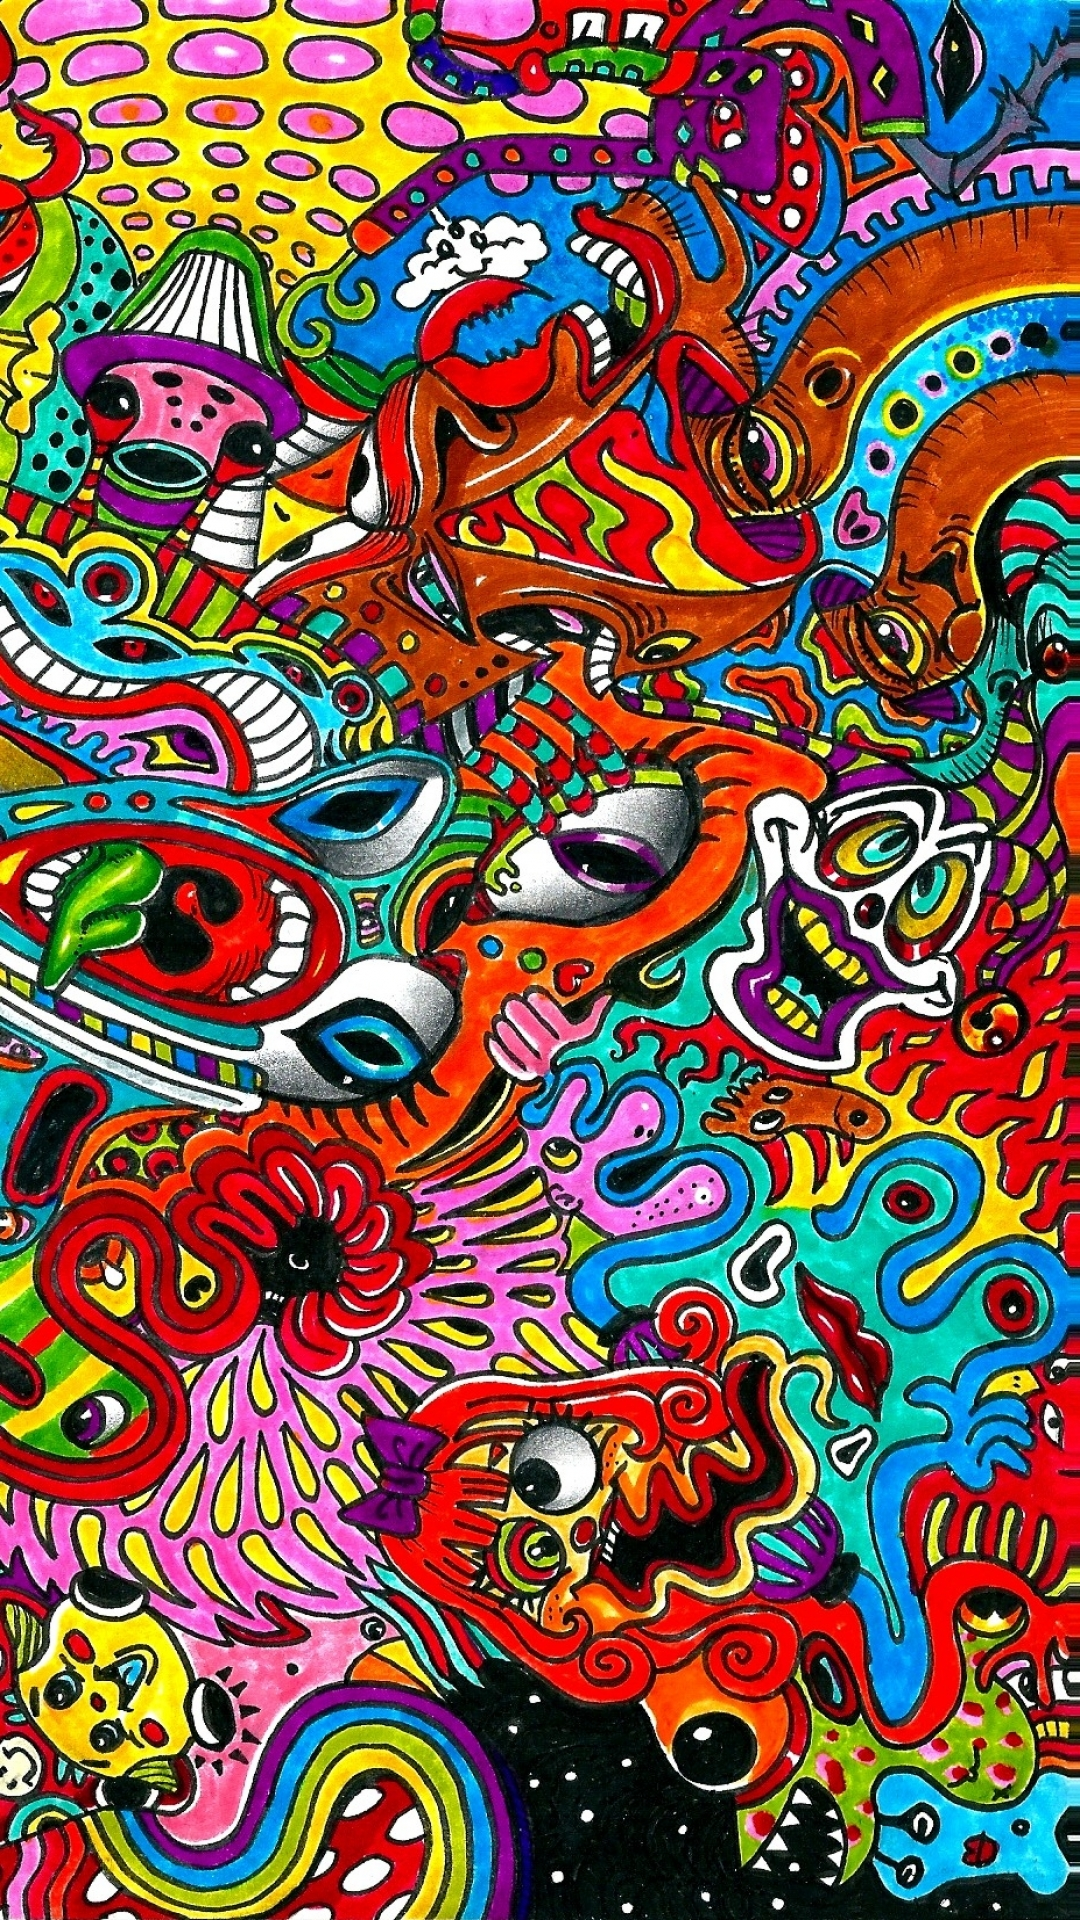 Free Download Psychedelic Phone Wallpaper Awesome 47 Psychedelic